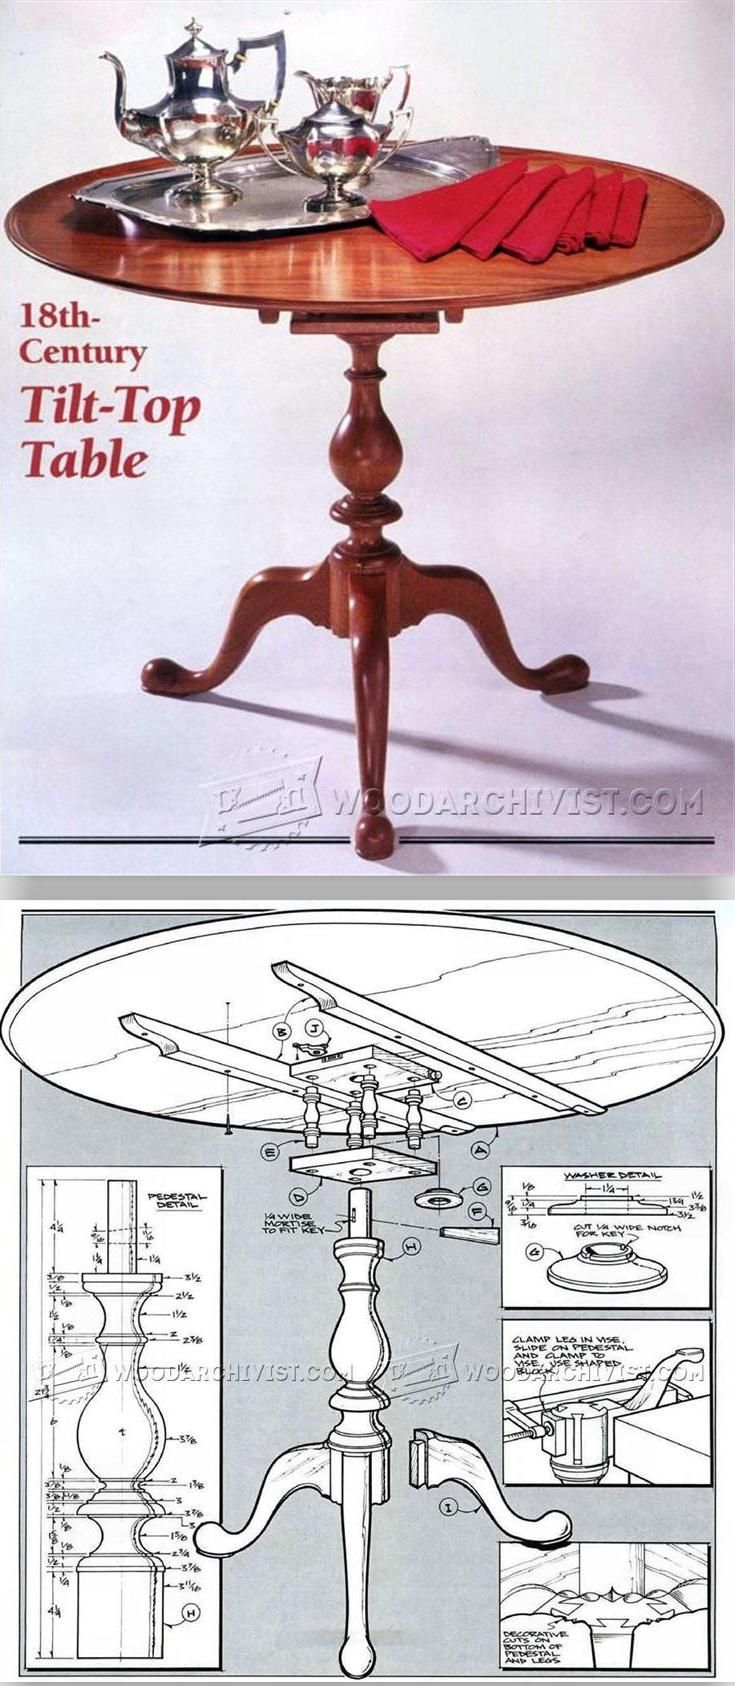 Tilt Top Table Plans - Furniture Plans and Projects | WoodArchivist.com